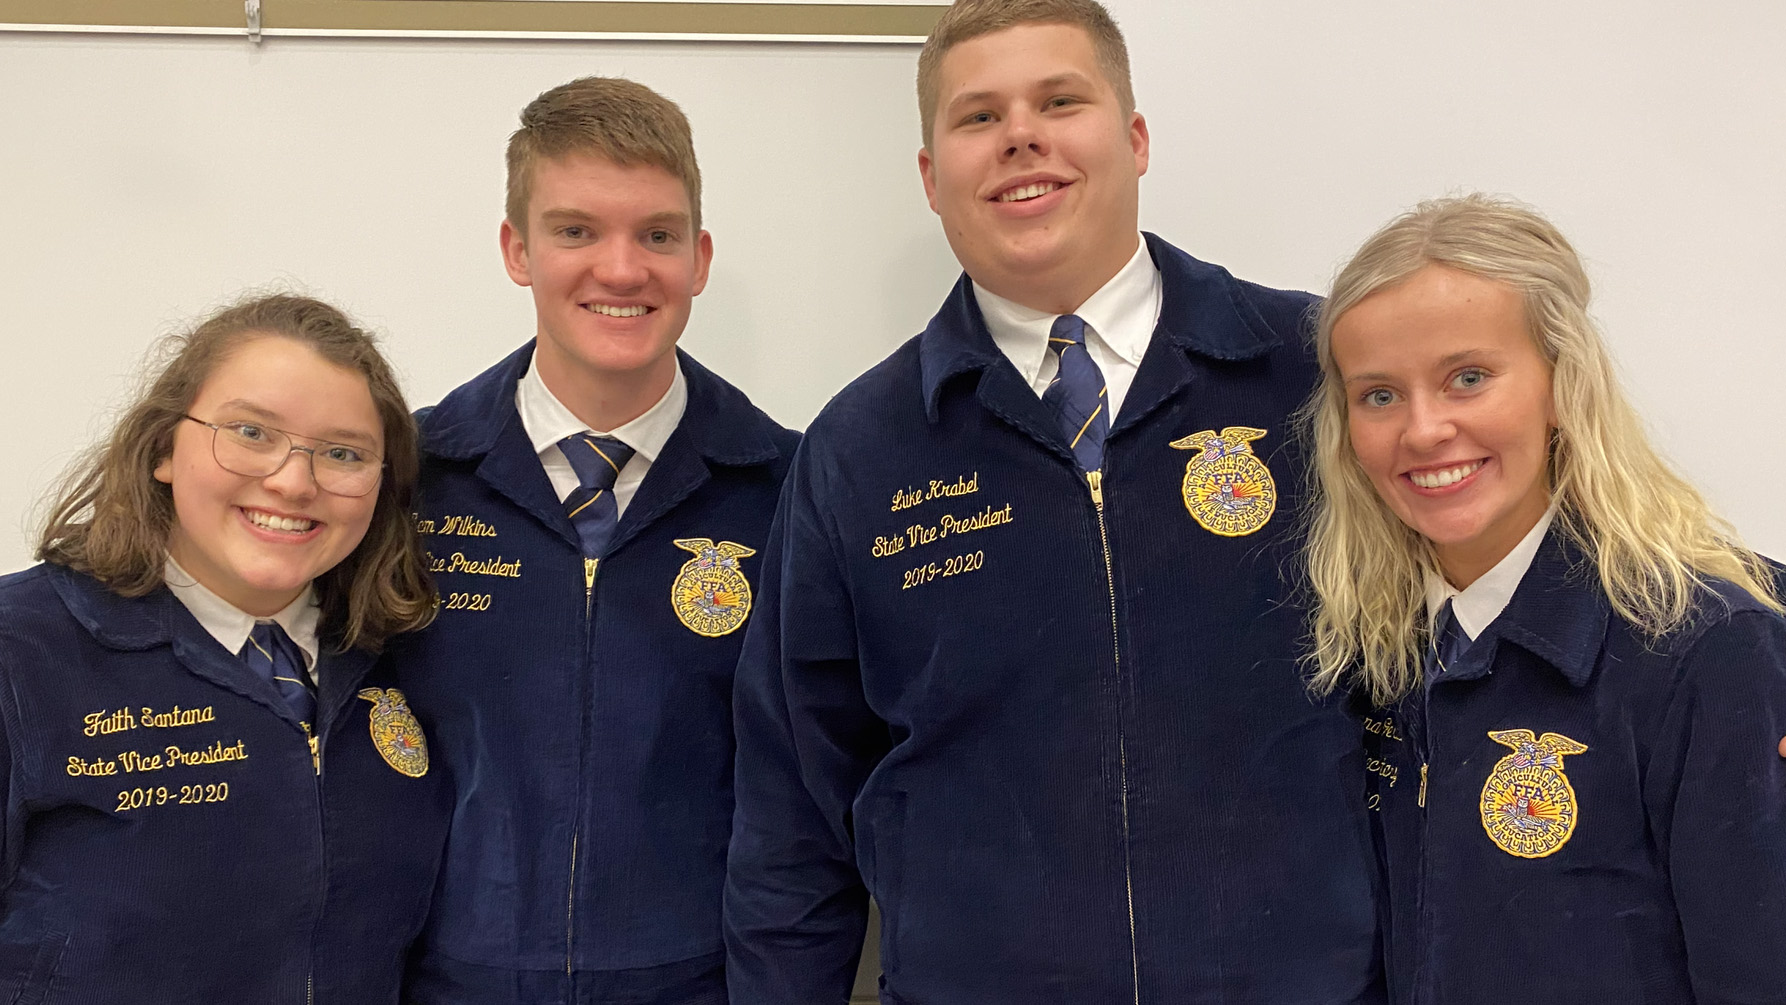 Nebraska State FFA officers, from left, Faith Santana, Sam Wilkens, Luke Krabel and Savannah Gerlach attend a District 11 FFA contest at the Nebraska College of Technical Agriculture in February. (NCTA photo)